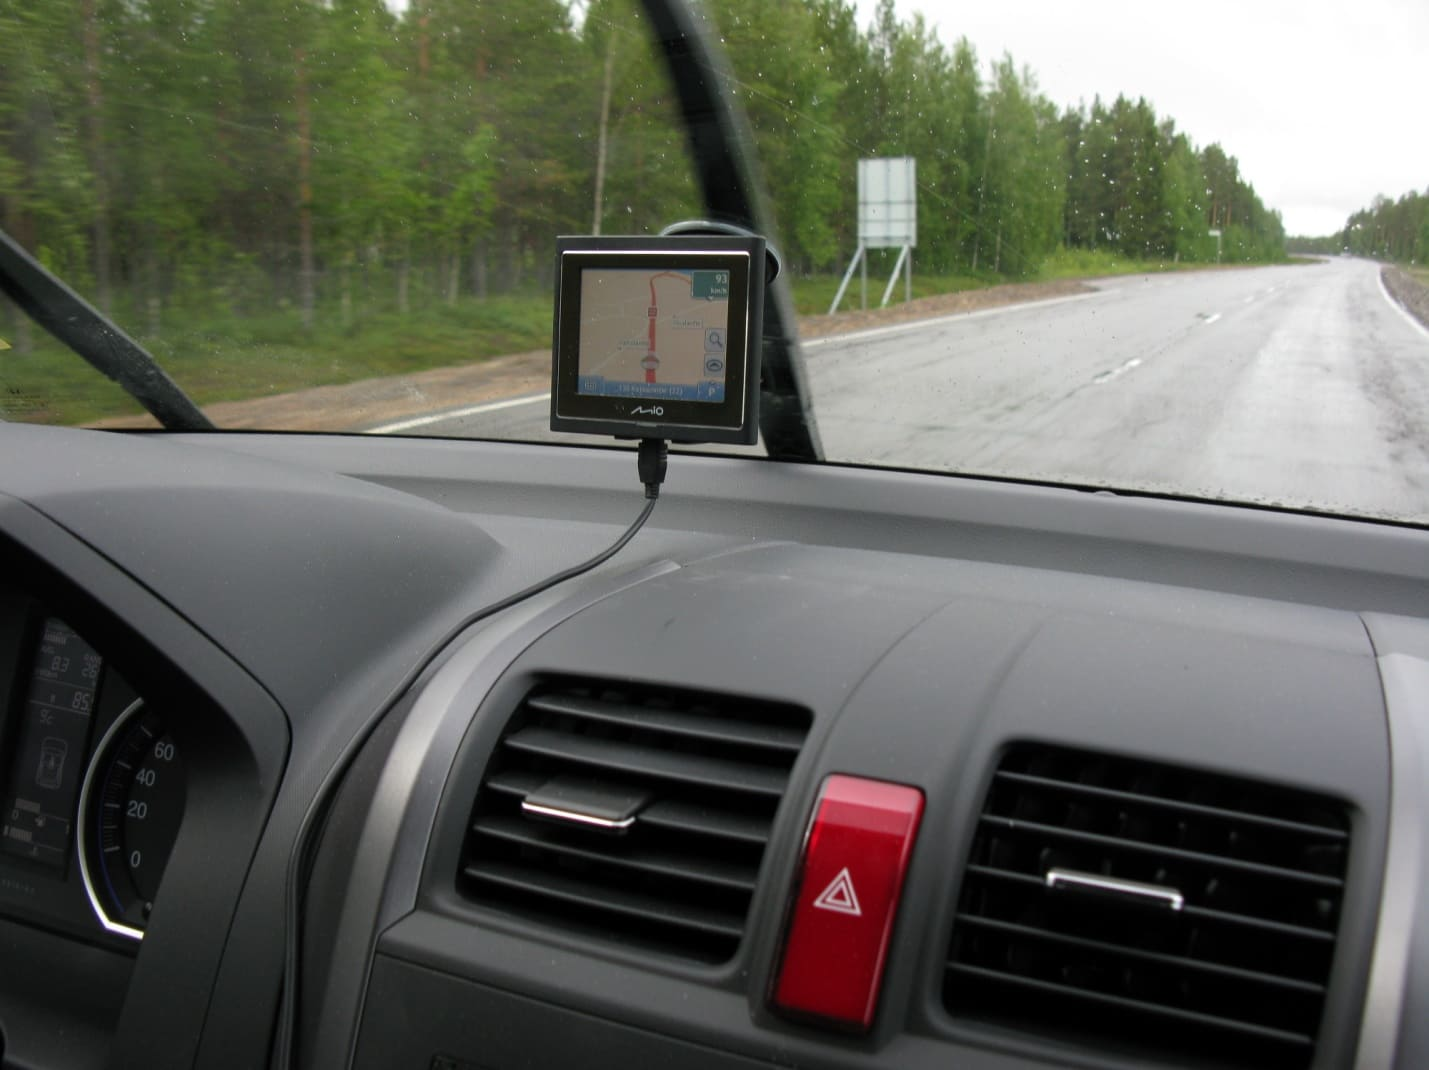 C:\Documents and Settings\Admin\Рабочий стол\Car_navigator_in_action.JPG